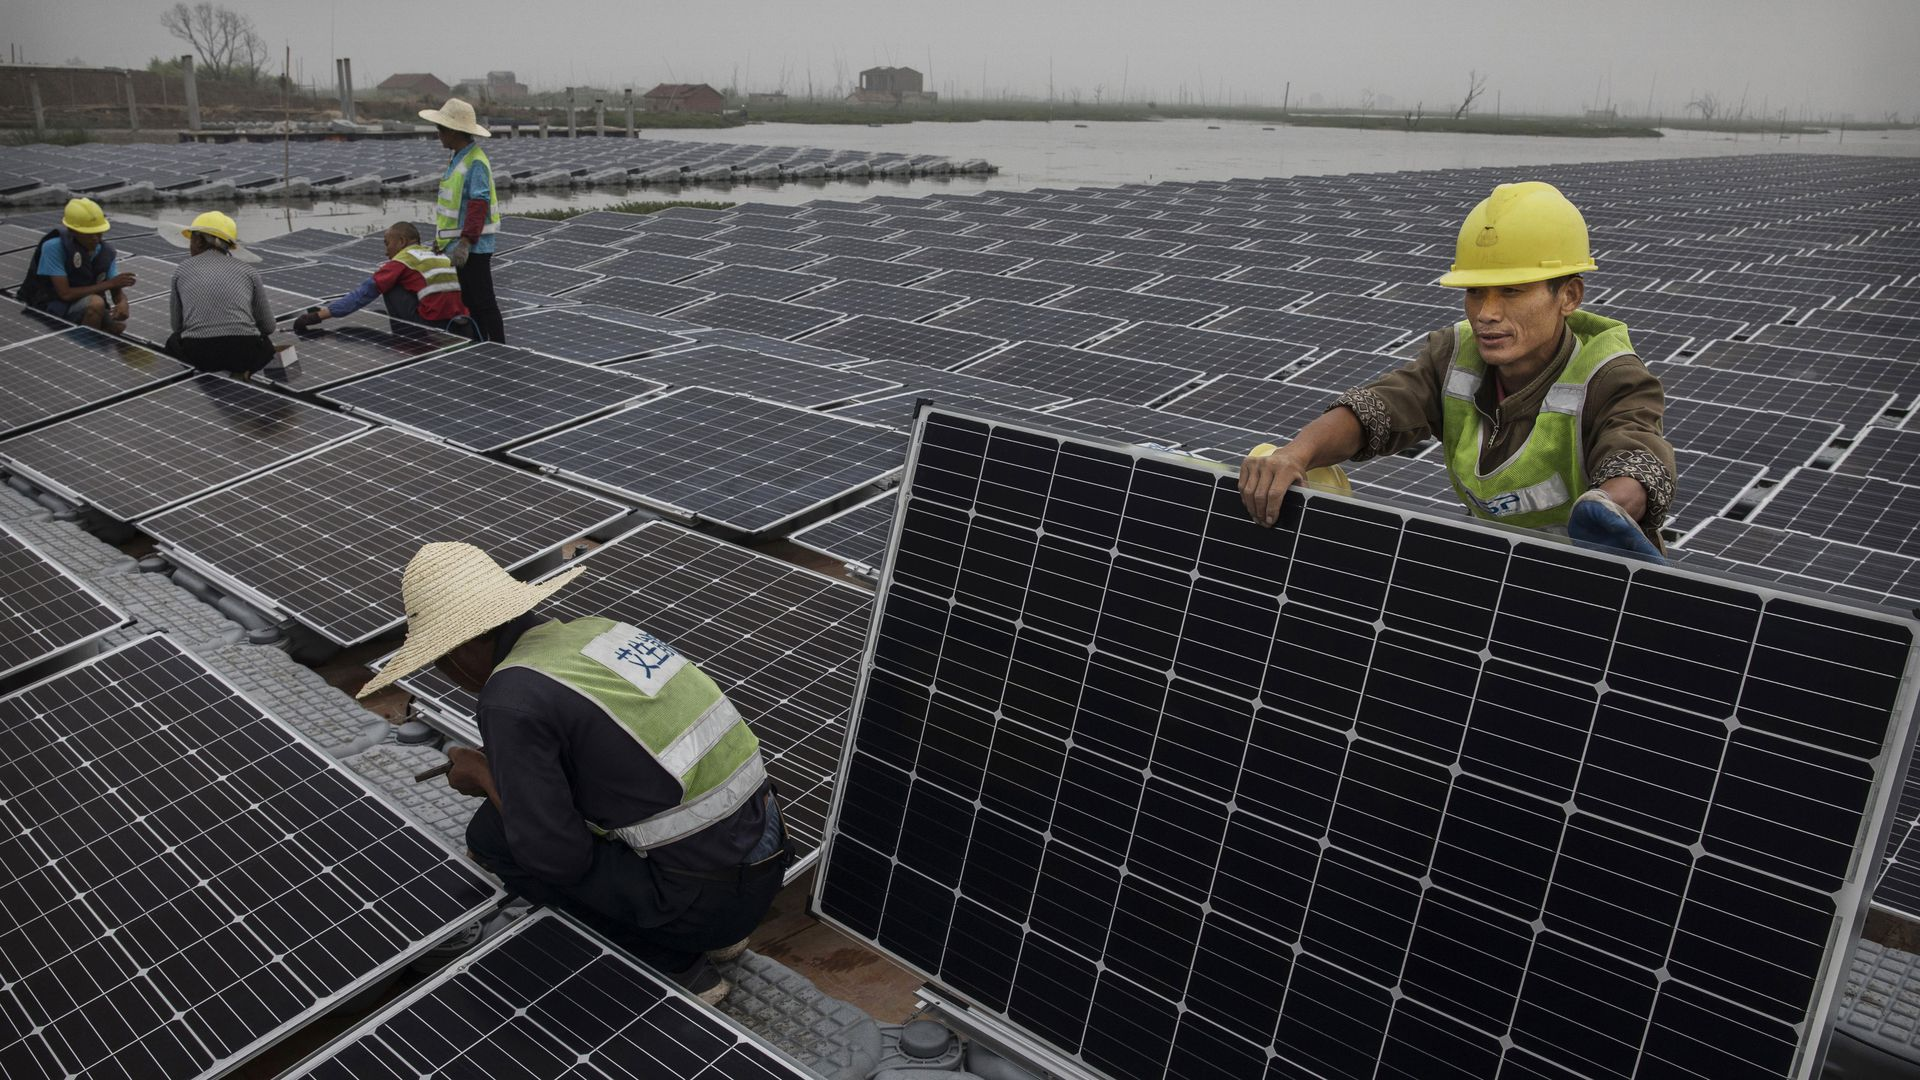 Chinese workers prepare panels that will be part of a large floating solar farm project under construction